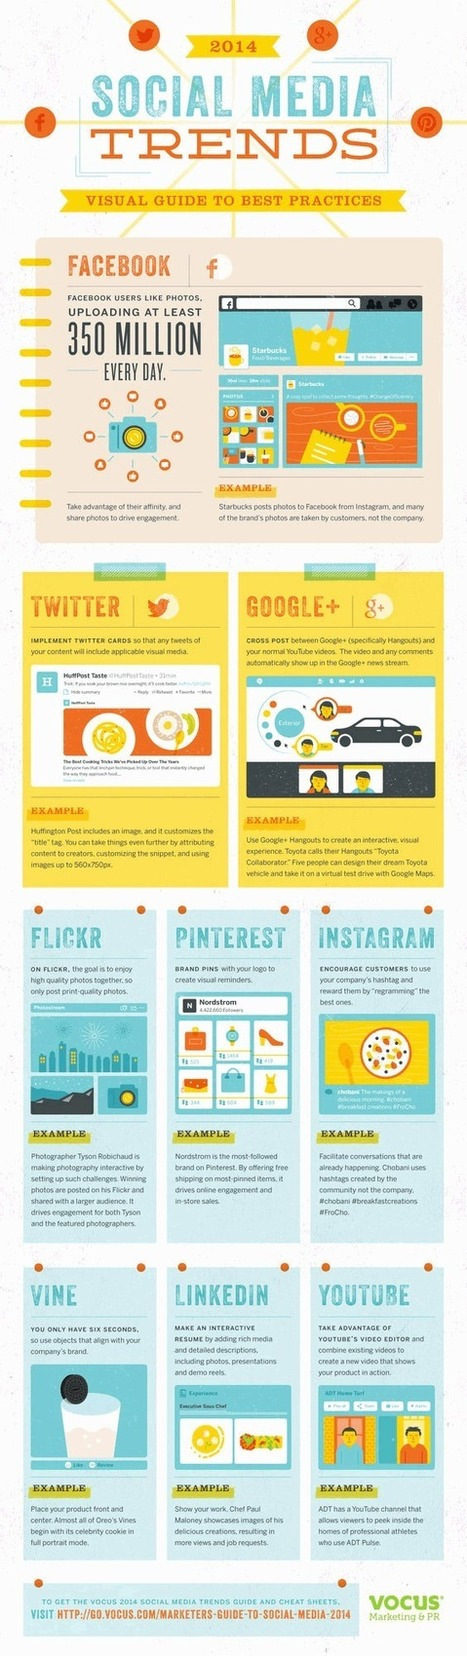 Social Media Marketing Tips 2014: A visual guide to best practices on Facebook, Twitter, Google+ and more | Business | Scoop.it